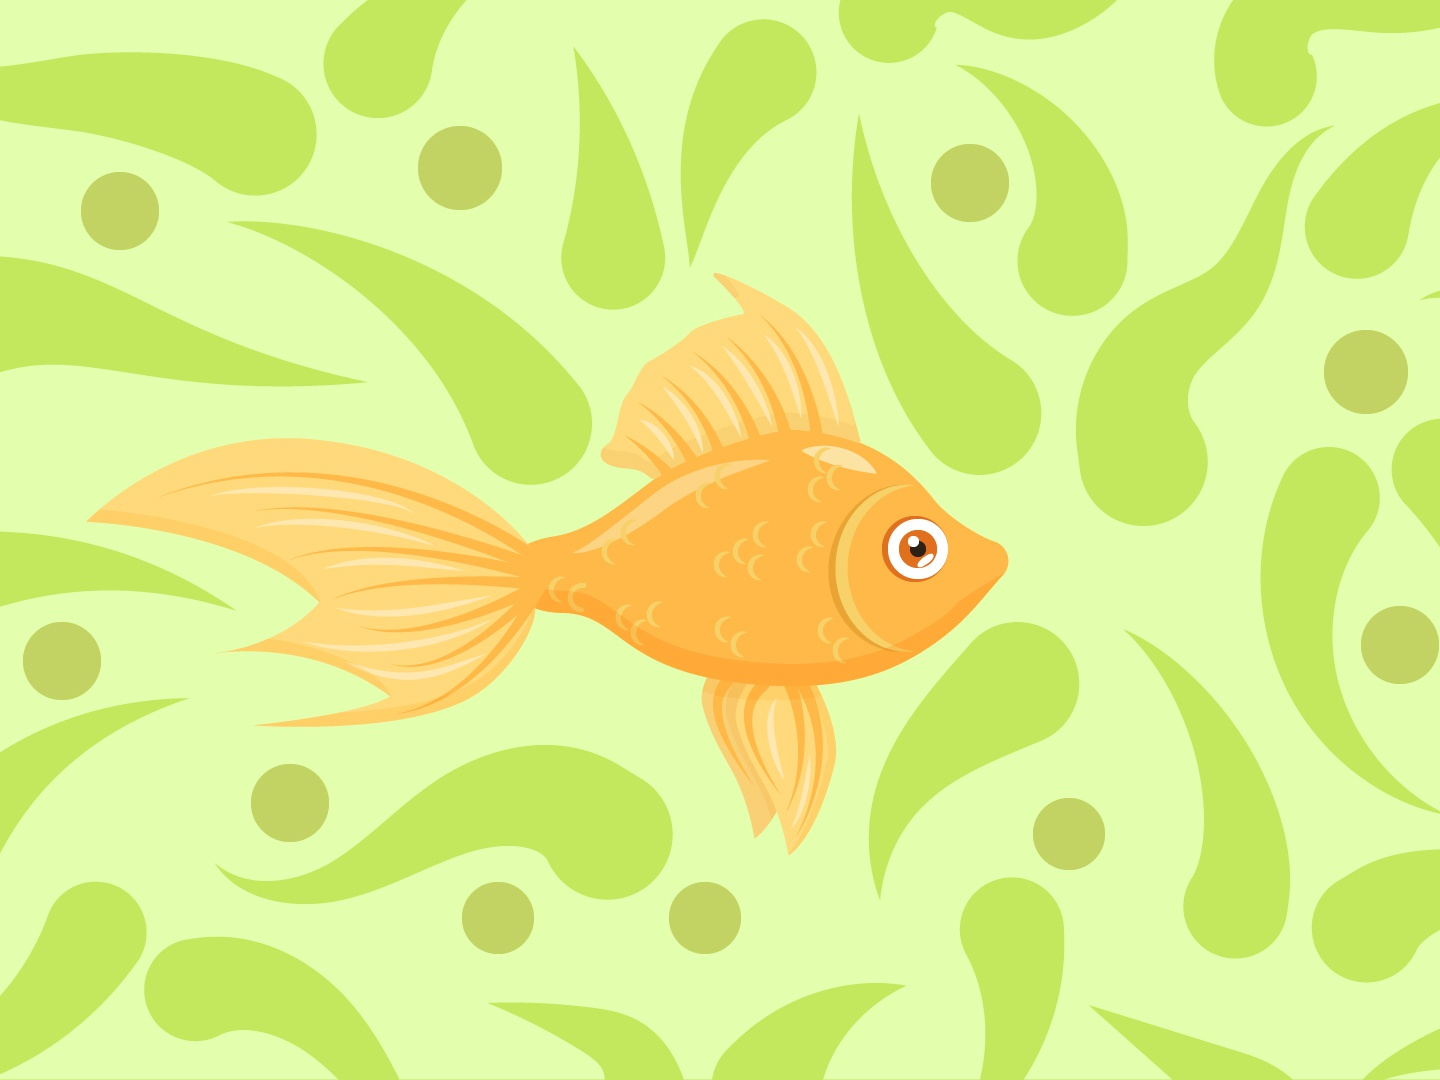 gold fish seaweed aquarium fairy tale water orange gold gold fish fish illustration vector